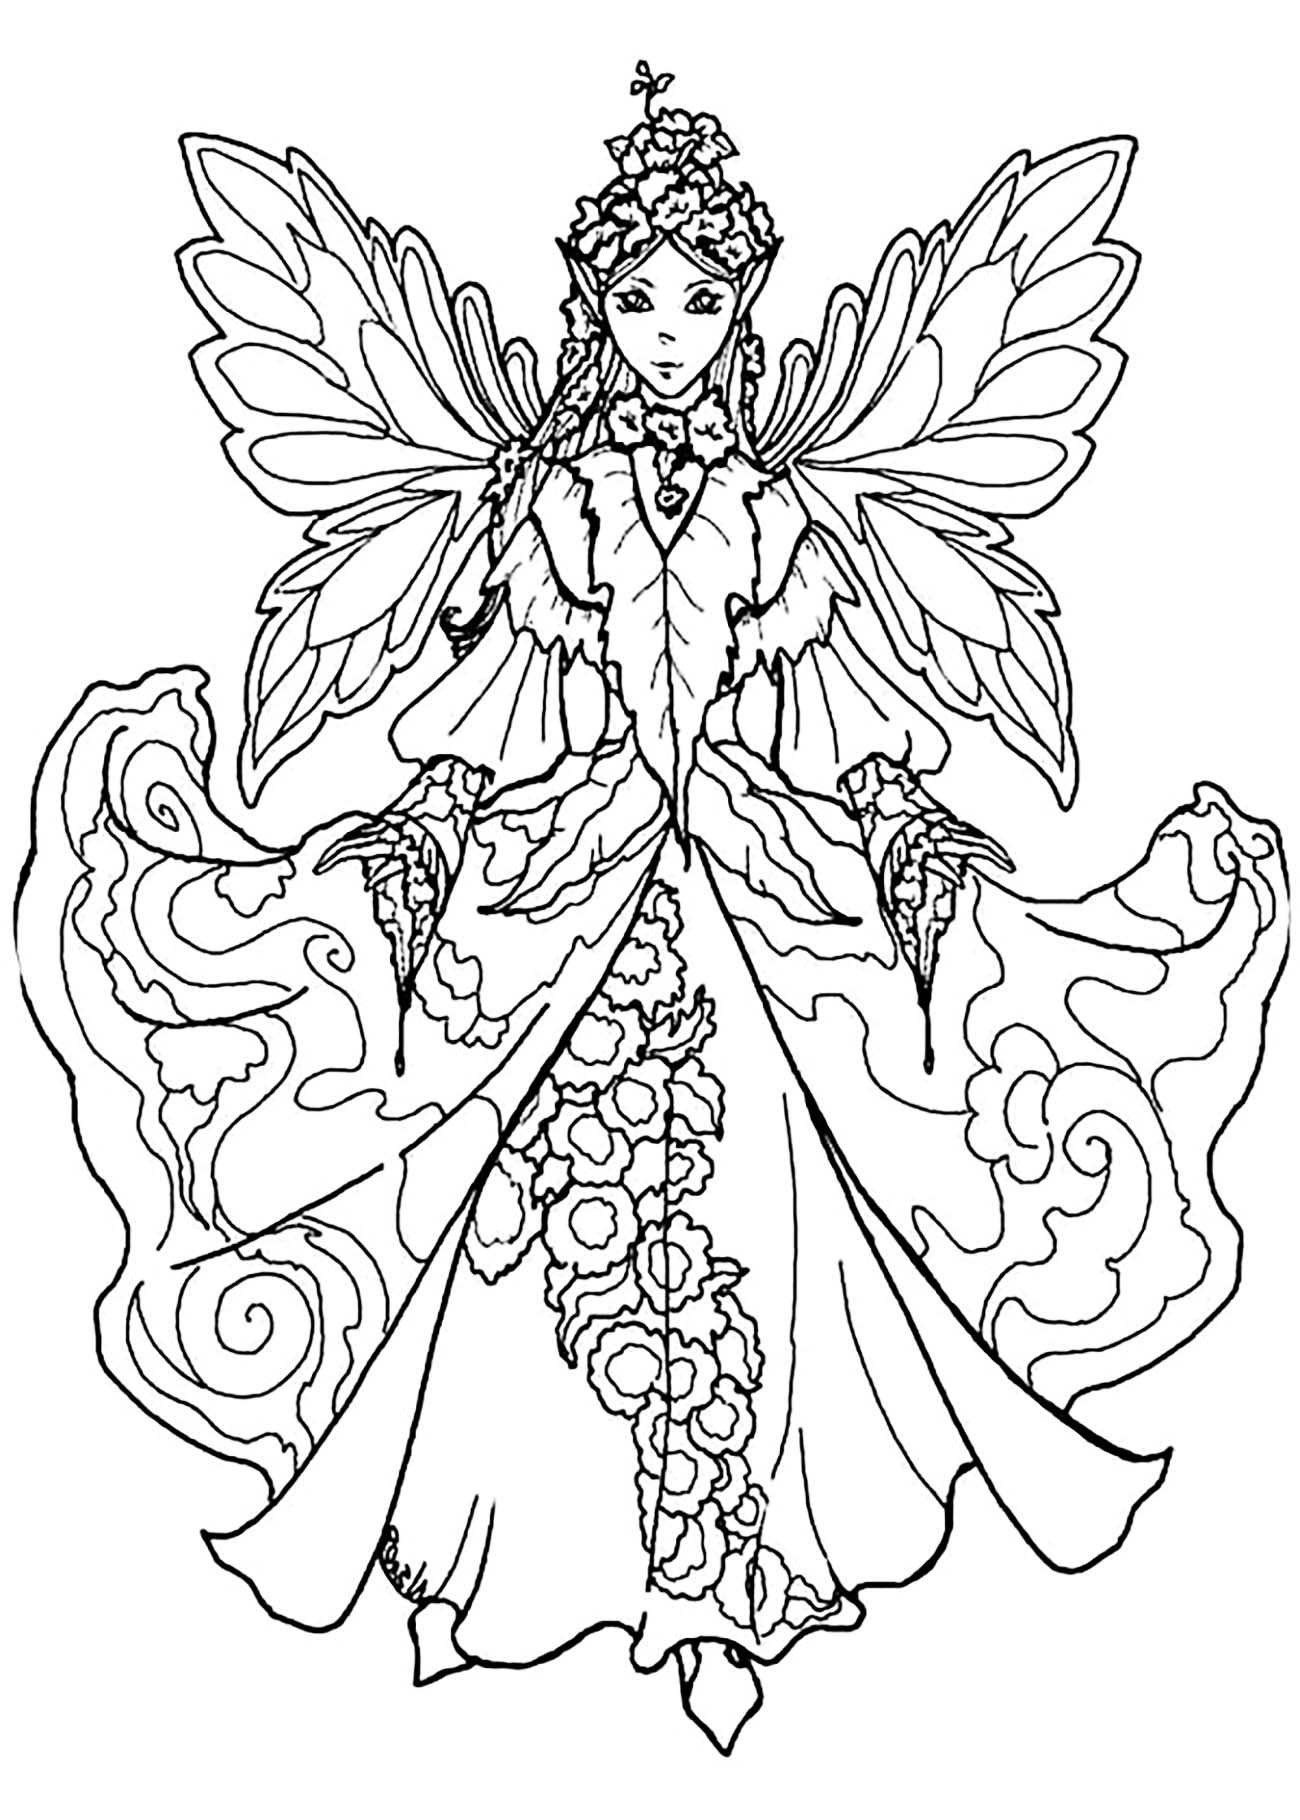 Adult Fairy Coloring Pages  Fairy with impressive dress Myths & legends Adult